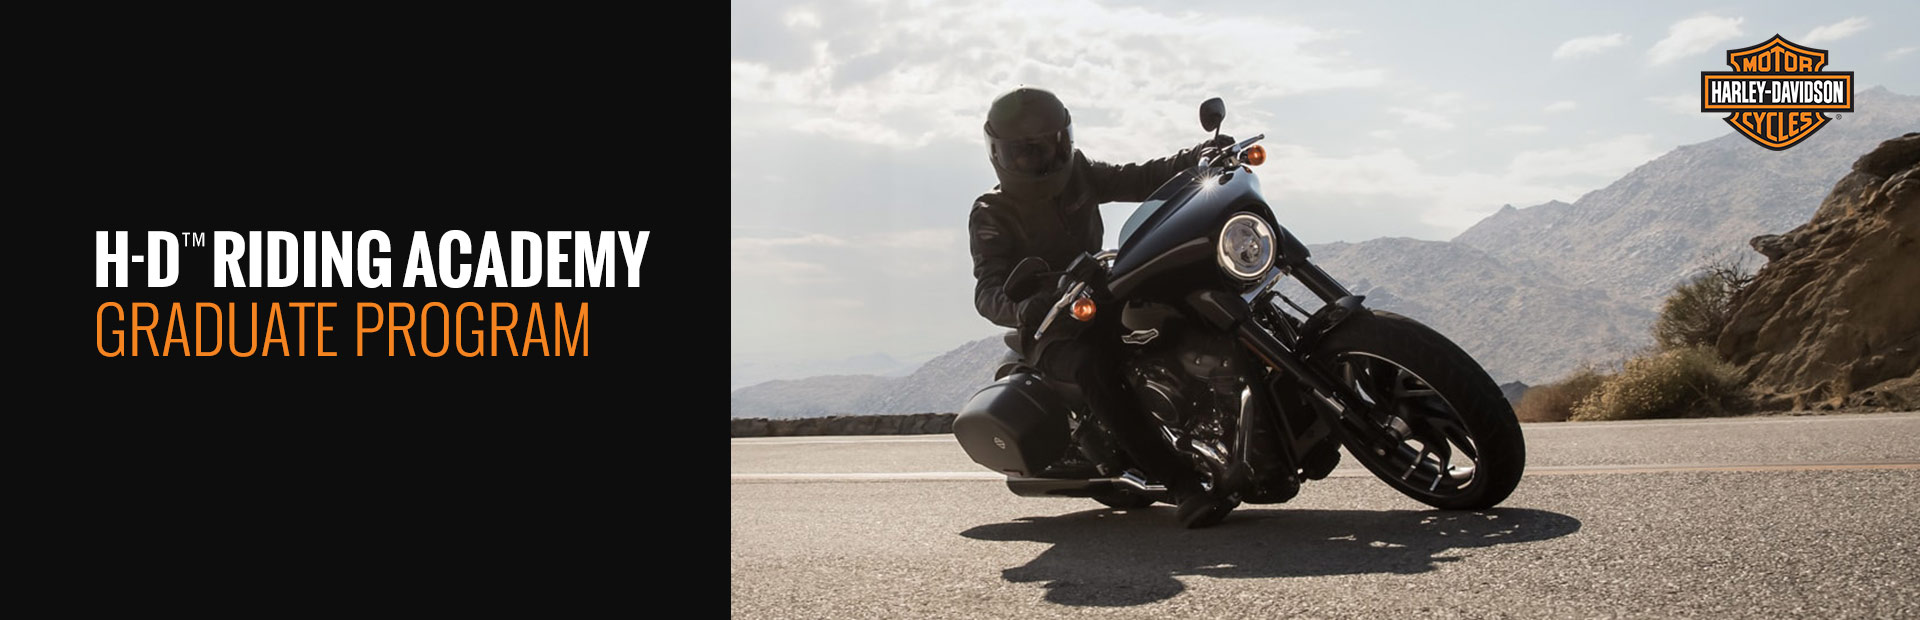 Harley-Davidson®: H-D™ Riding Academy Graduate Program